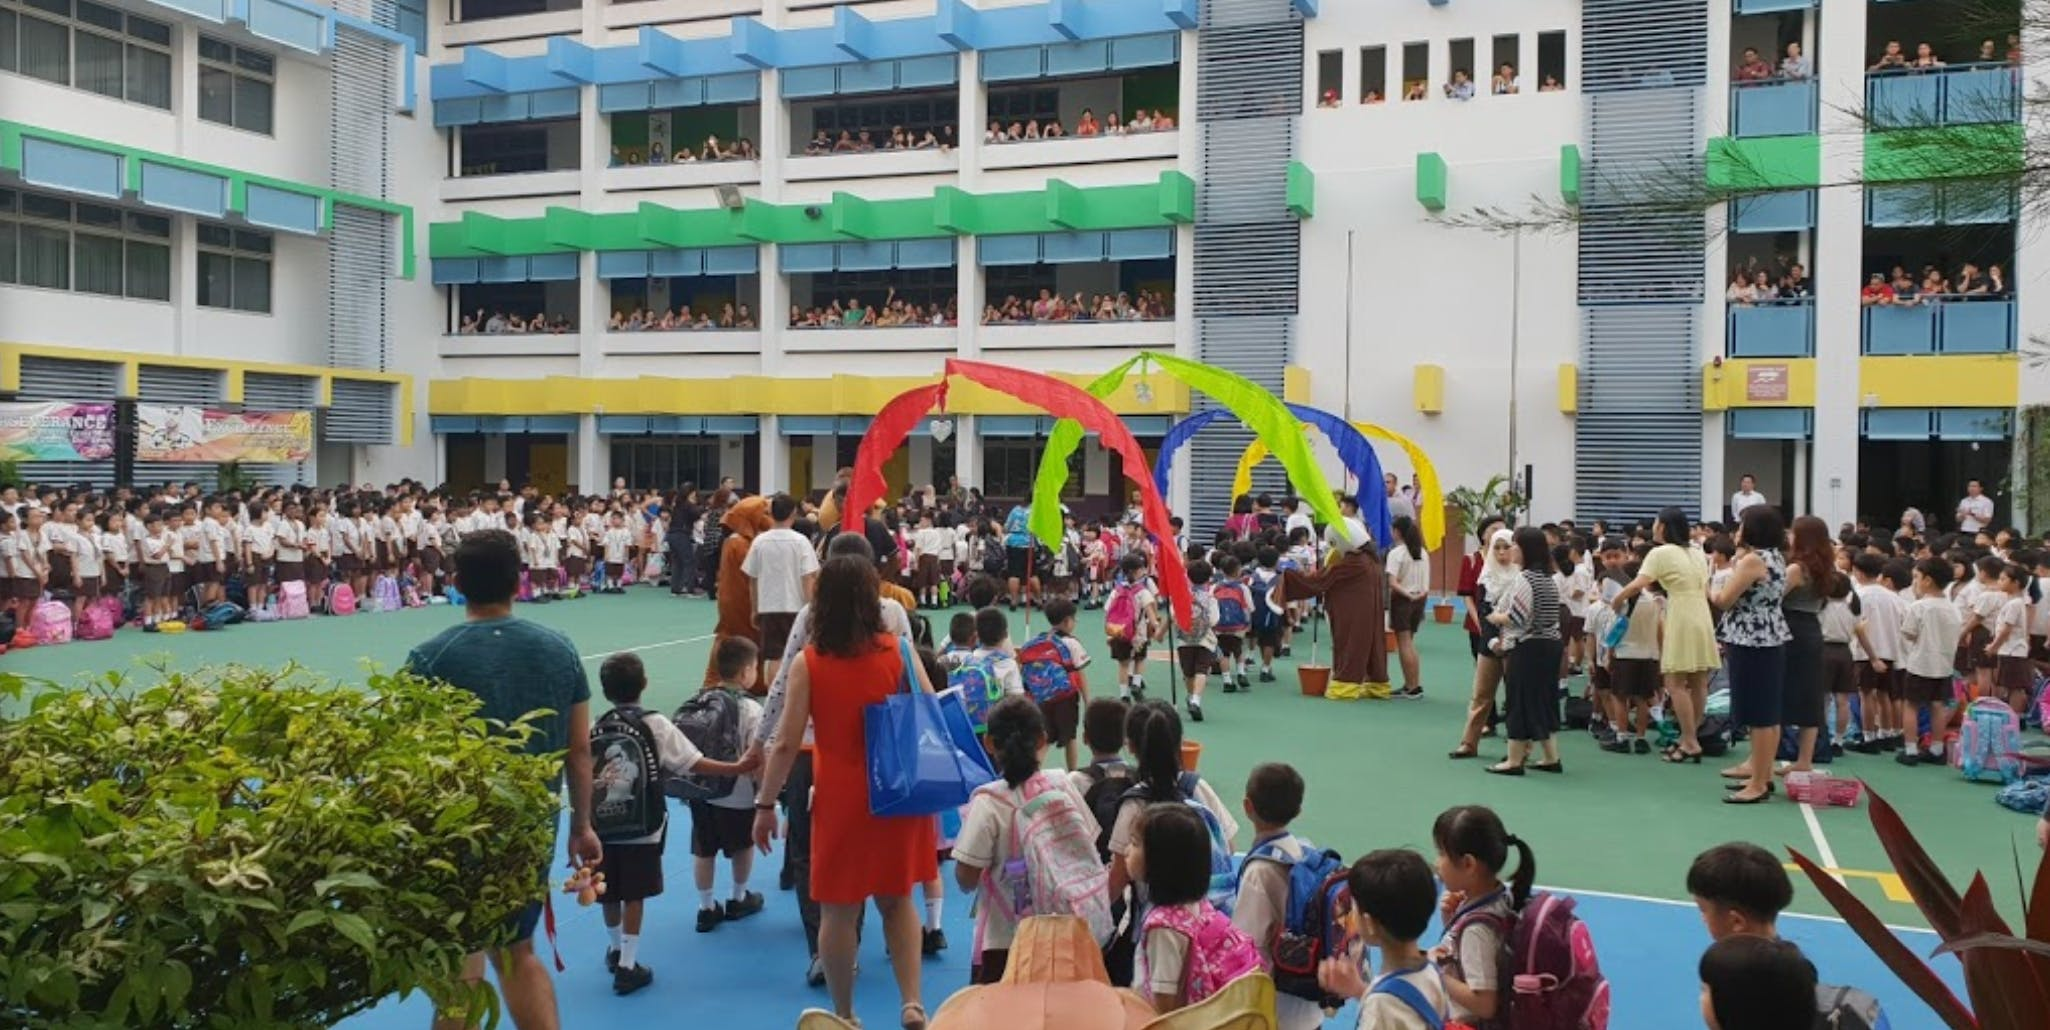 Fuhua Primary School activities